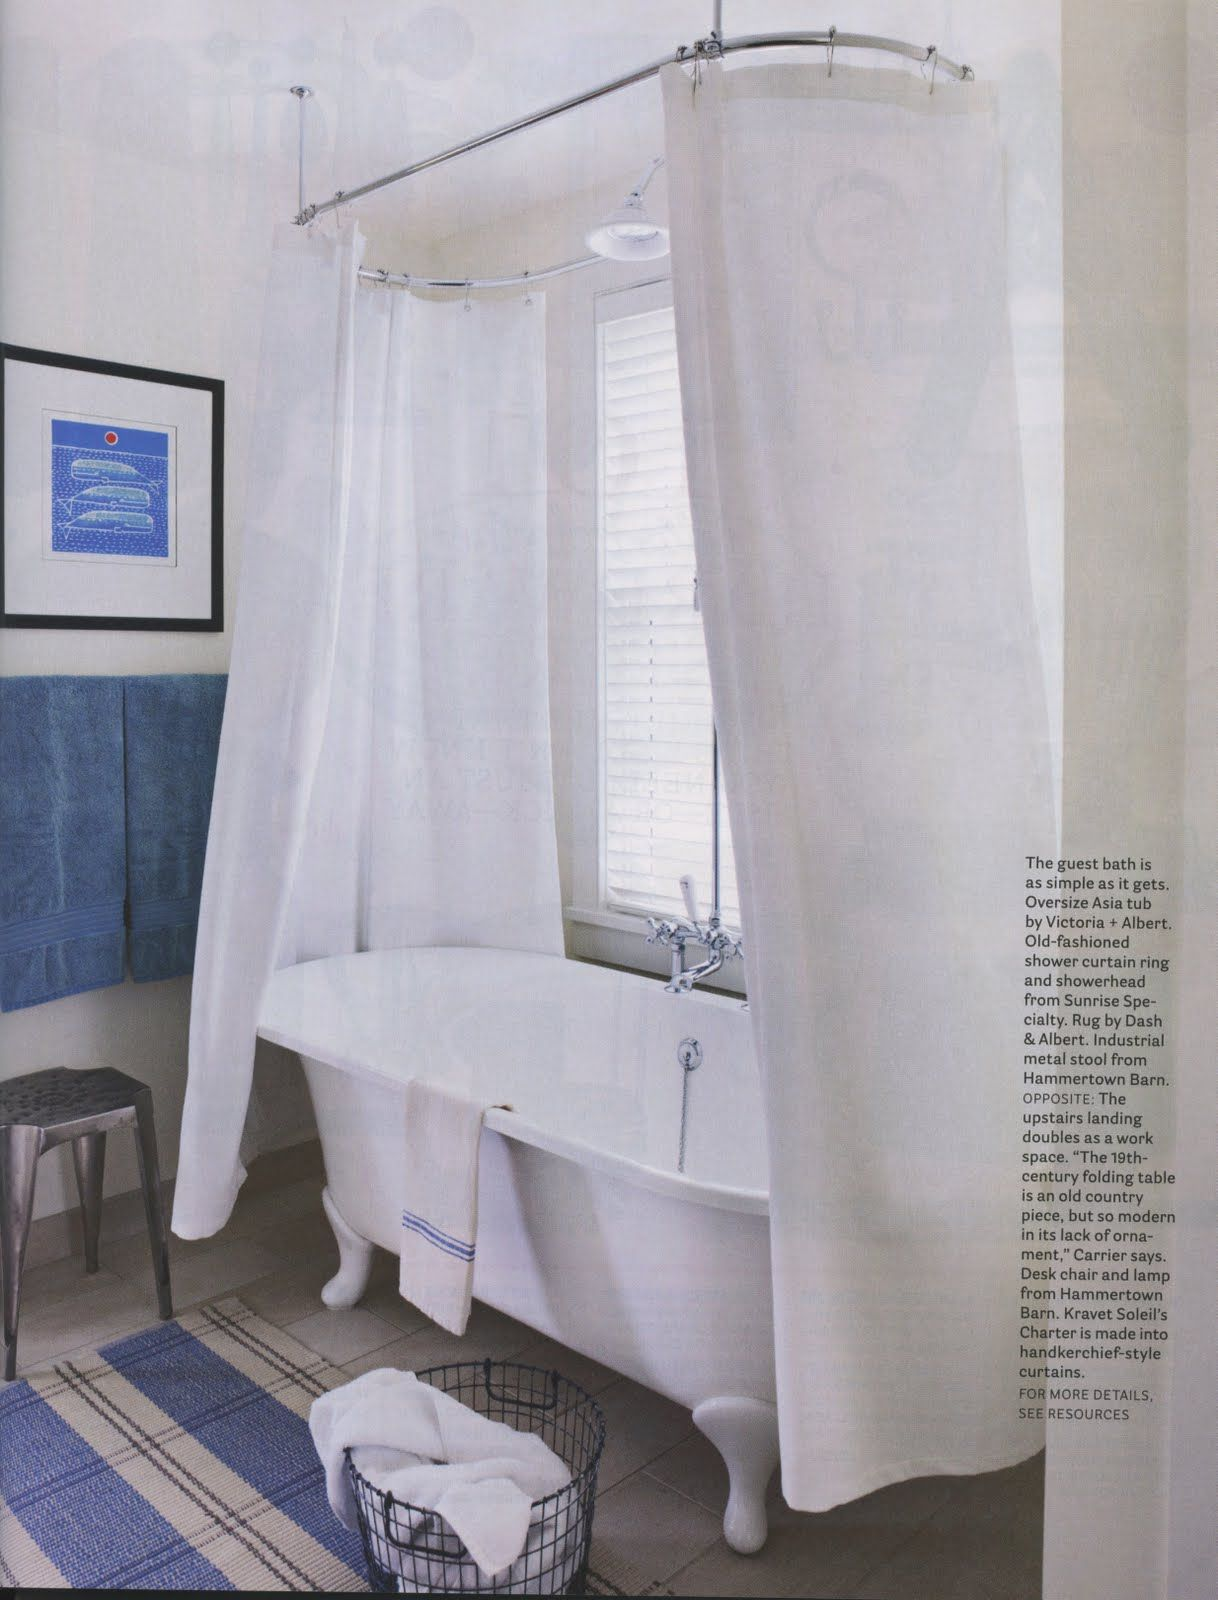 Bathtubs Stand Alone With Curtain Joined Thu Jun 25 21 06 31